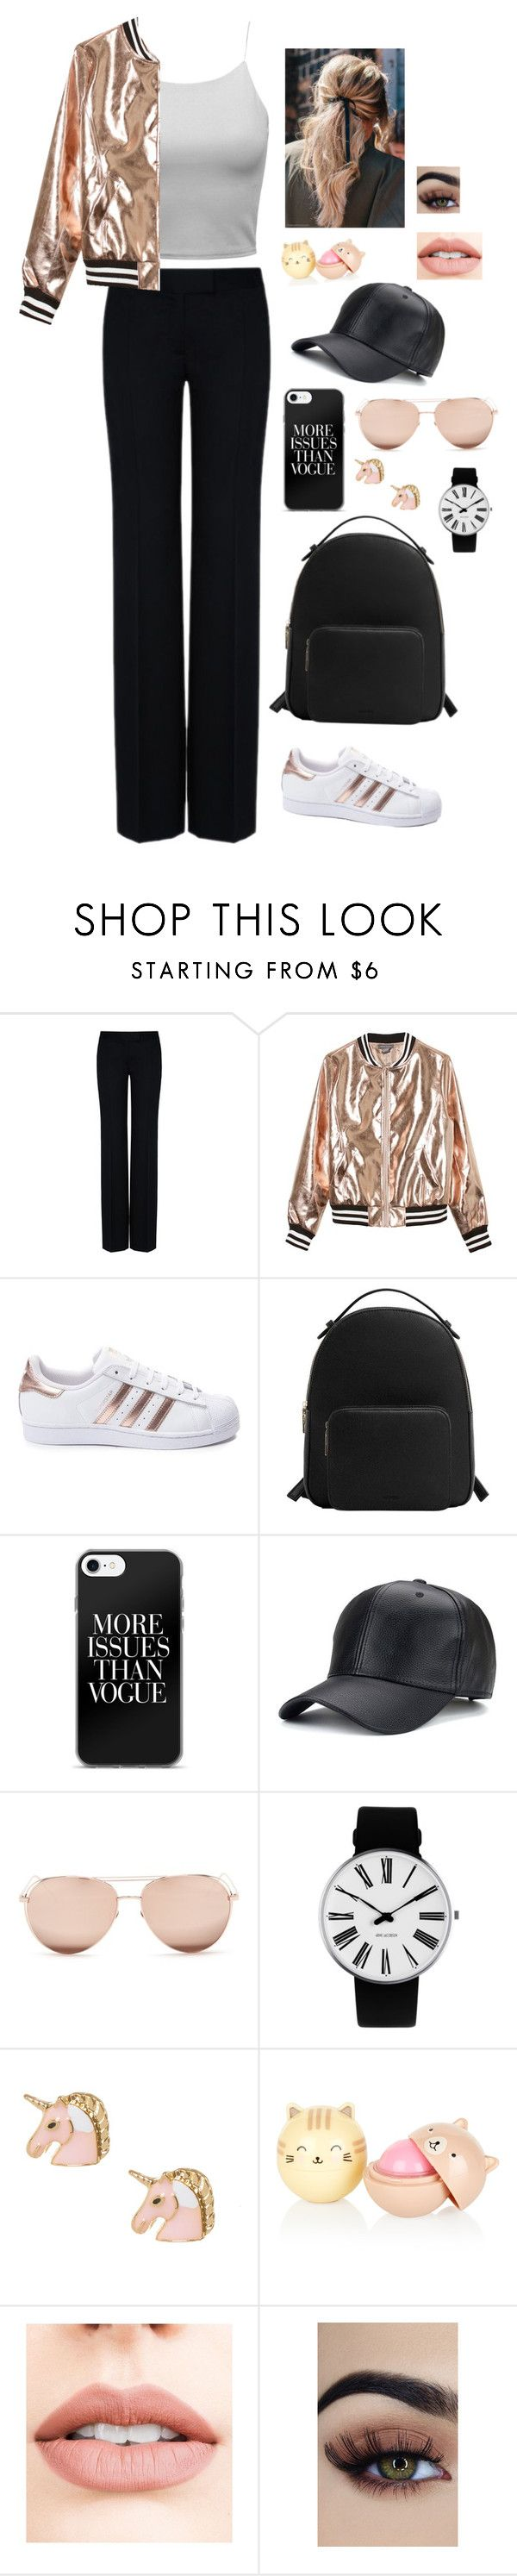 """""""Airport Chic"""" by fangirl-2001 ❤ liked on Polyvore featuring STELLA McCARTNEY, Sans Souci, adidas, MANGO, Linda Farrow, Rosendahl, Jouer, chic, airport and newyear"""